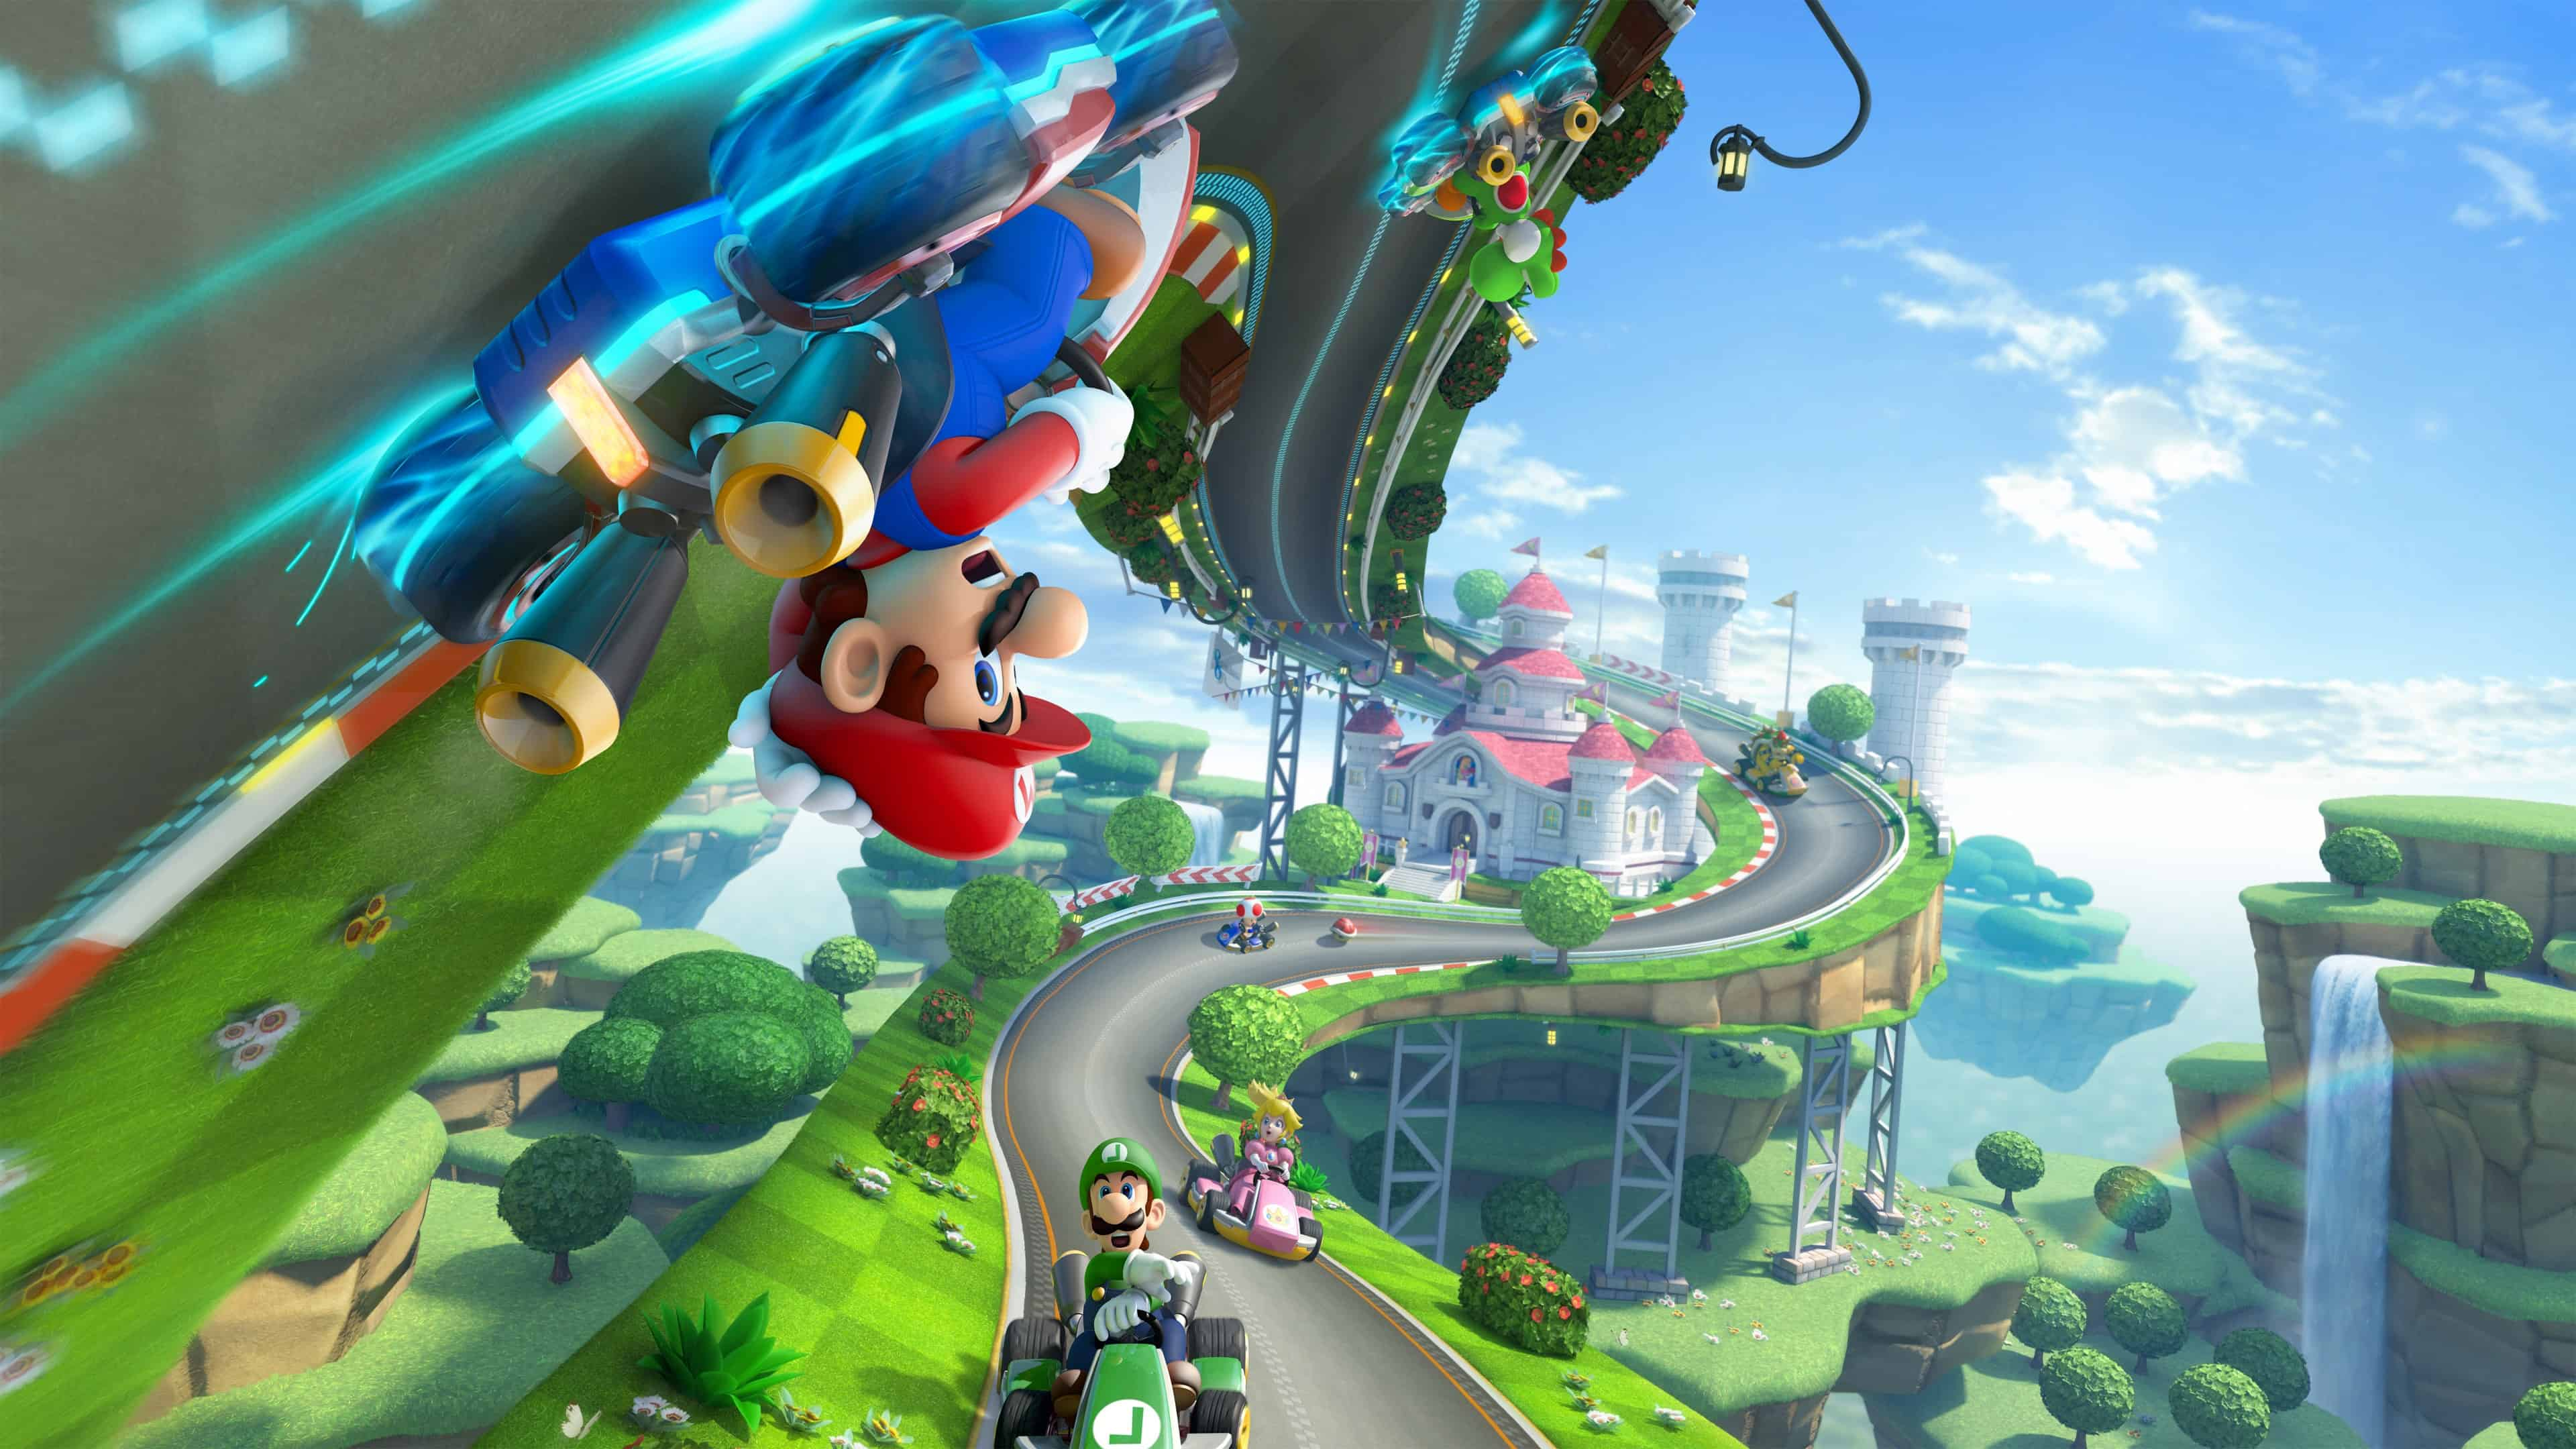 Mario Kart 8 Background: Mario Kart 8 UHD 4K Wallpaper